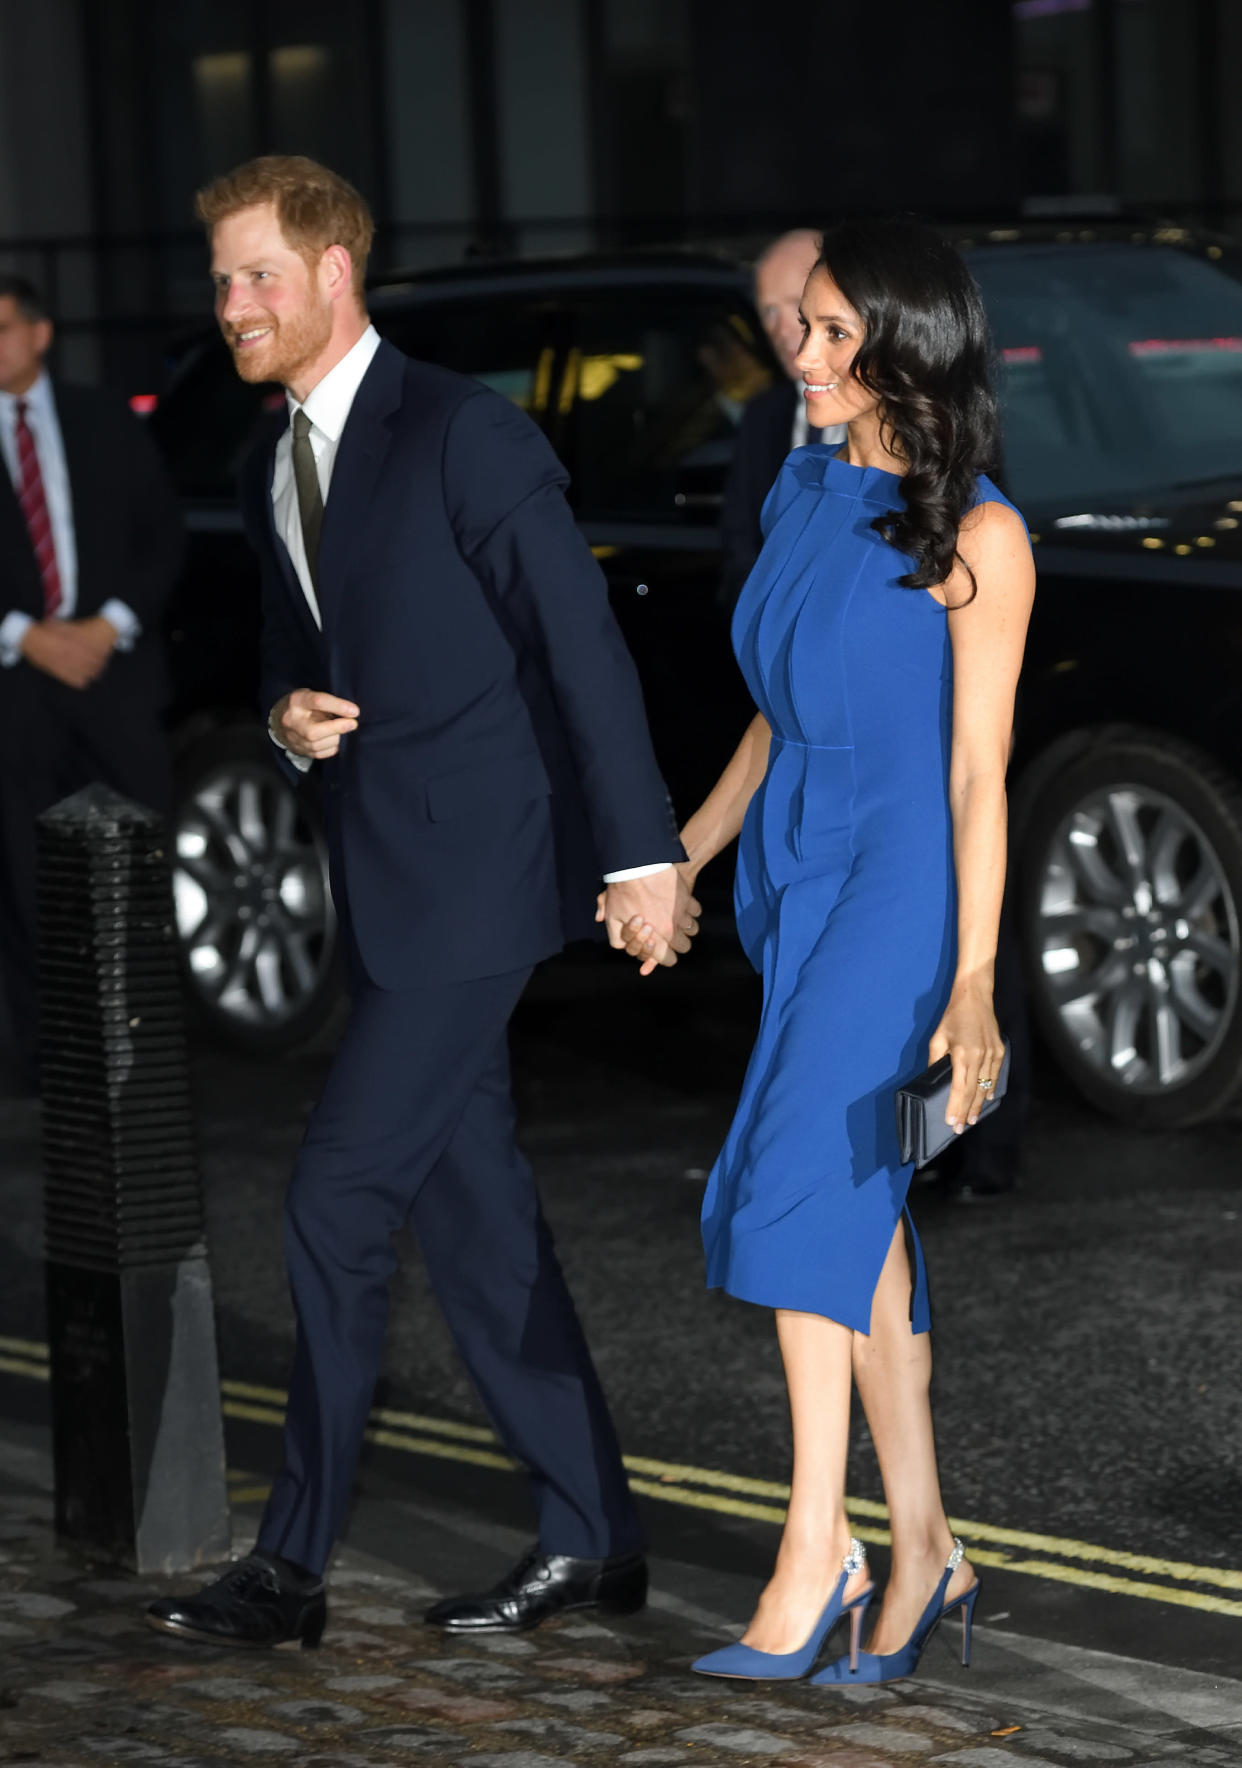 Prince Harry and the Duchess of Sussex arrive at the 100 Days of Peace in London. (Photo: Getty Images)